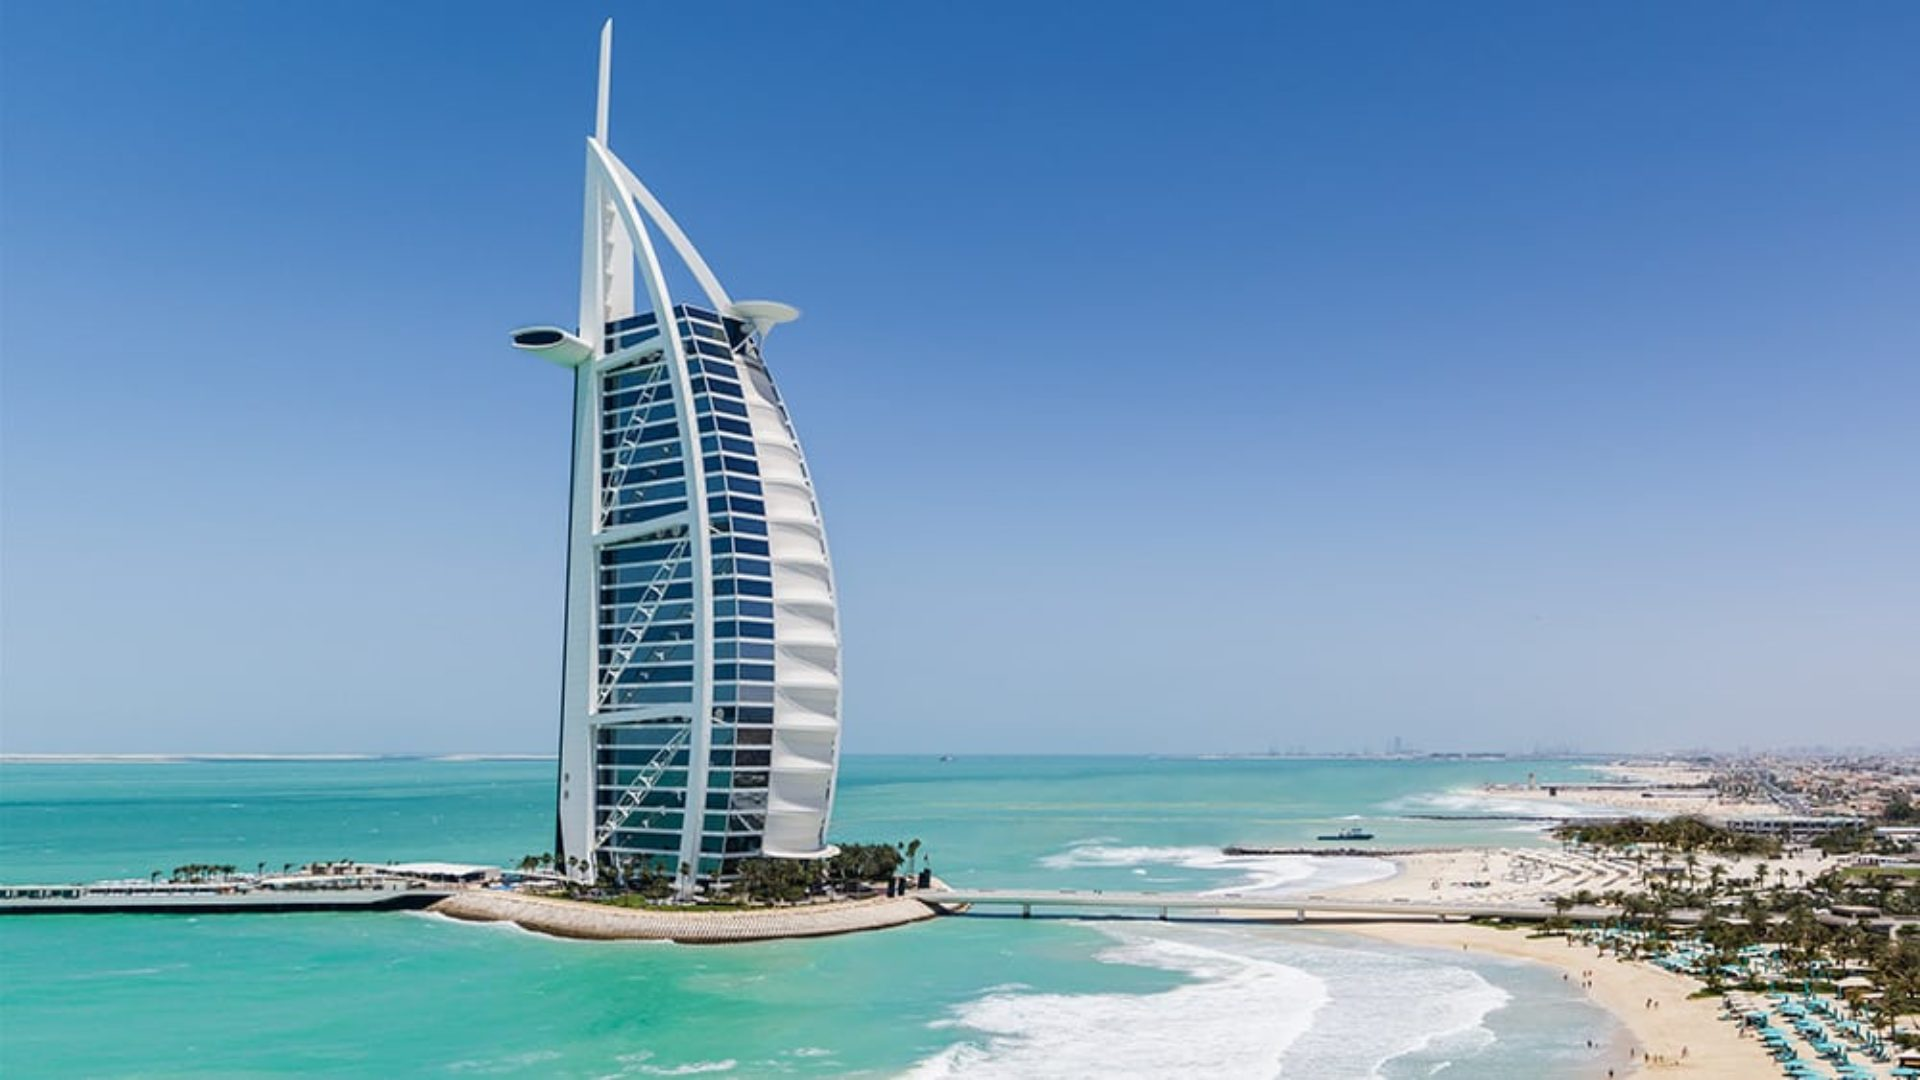 The Burj Al Arab and Jumeirah Beach in Dubai